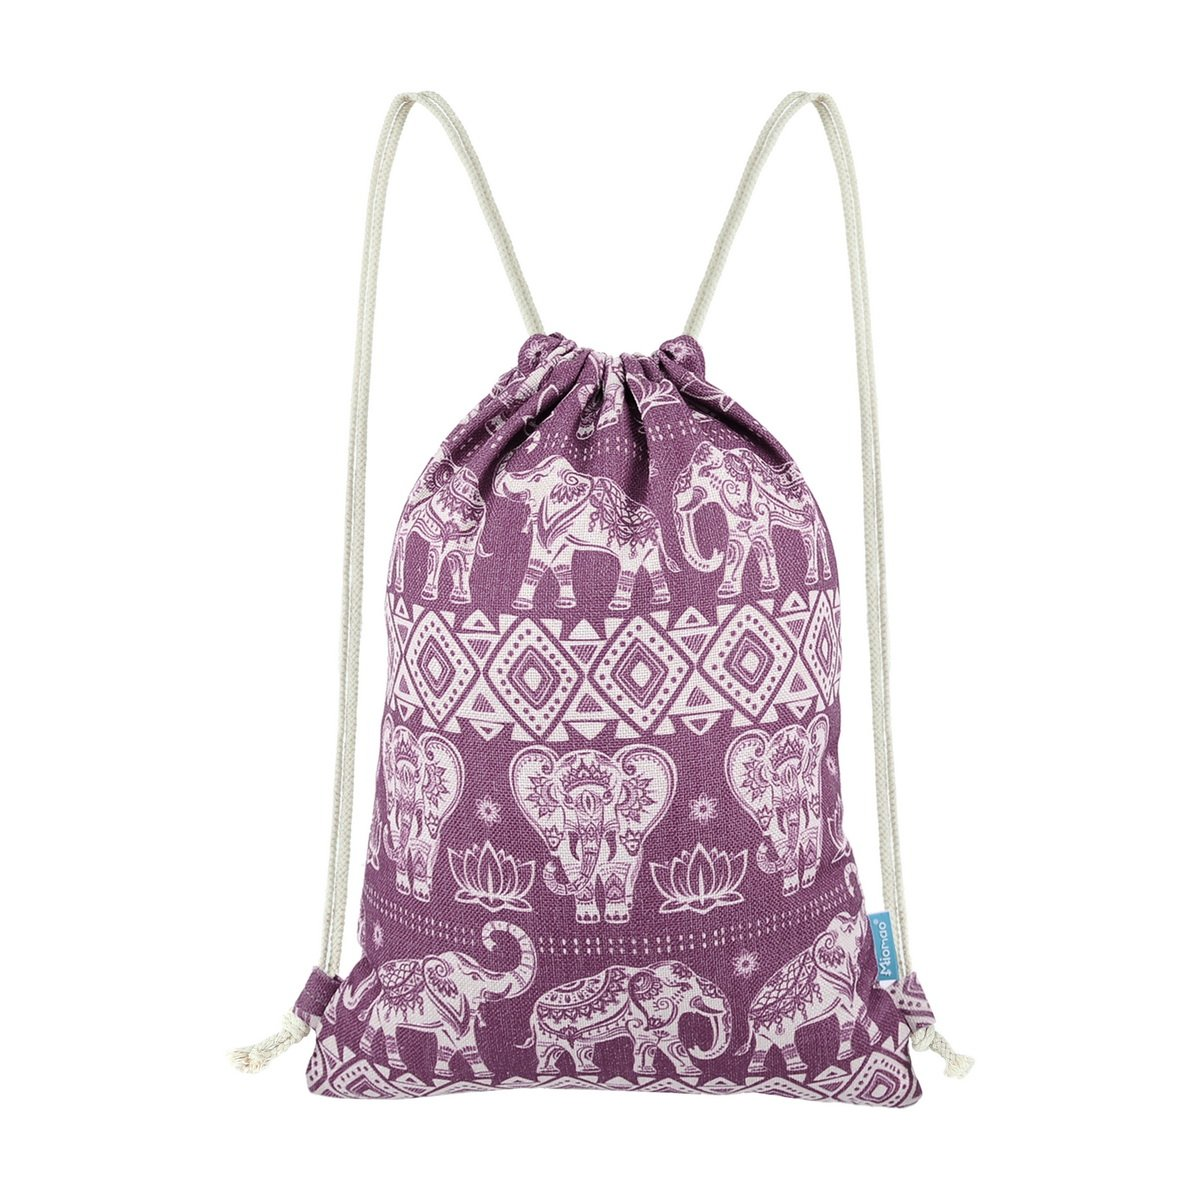 Miomao Gym Sackpack Drawstring Backpack Elephant Cinch Pack Geometric Sinch Sack With Pockets Sport String Bag Yoga Daypack Beach Gift Bag For Man & Women, 13'' X 18'', Lilac Purple